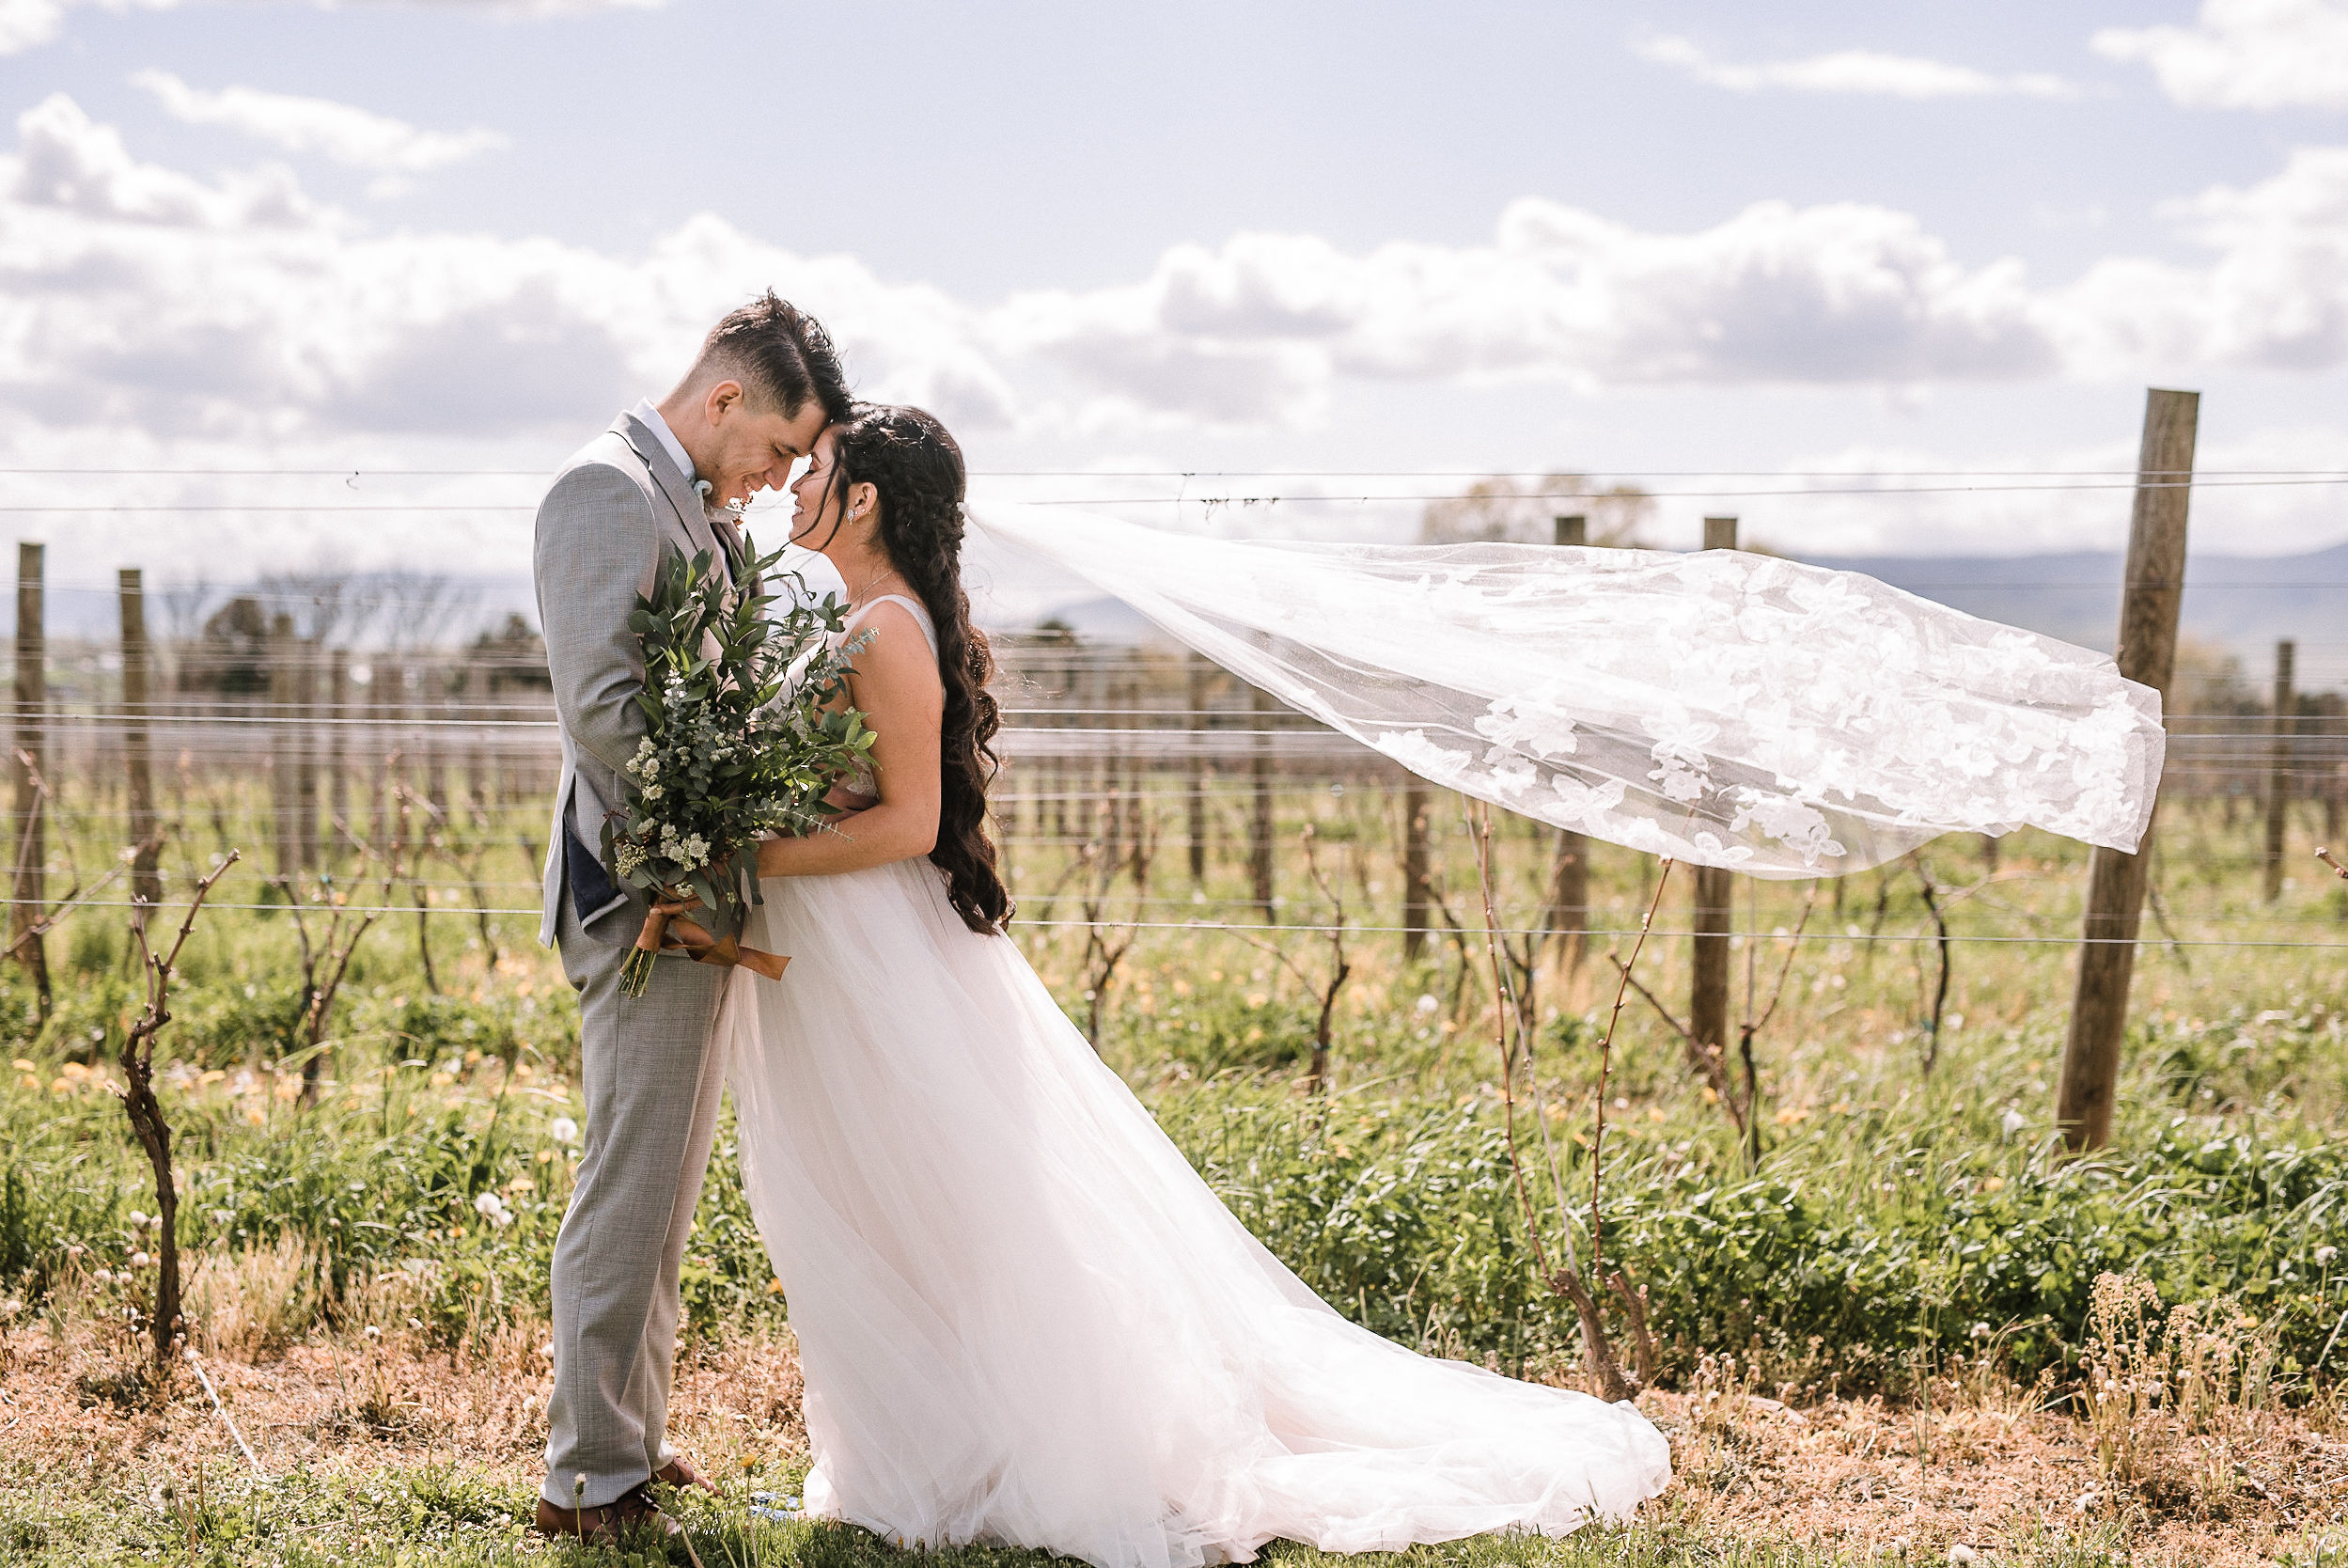 bride and groom embracing and veil is in the air at the Faithbrooke Barn & Vineyards